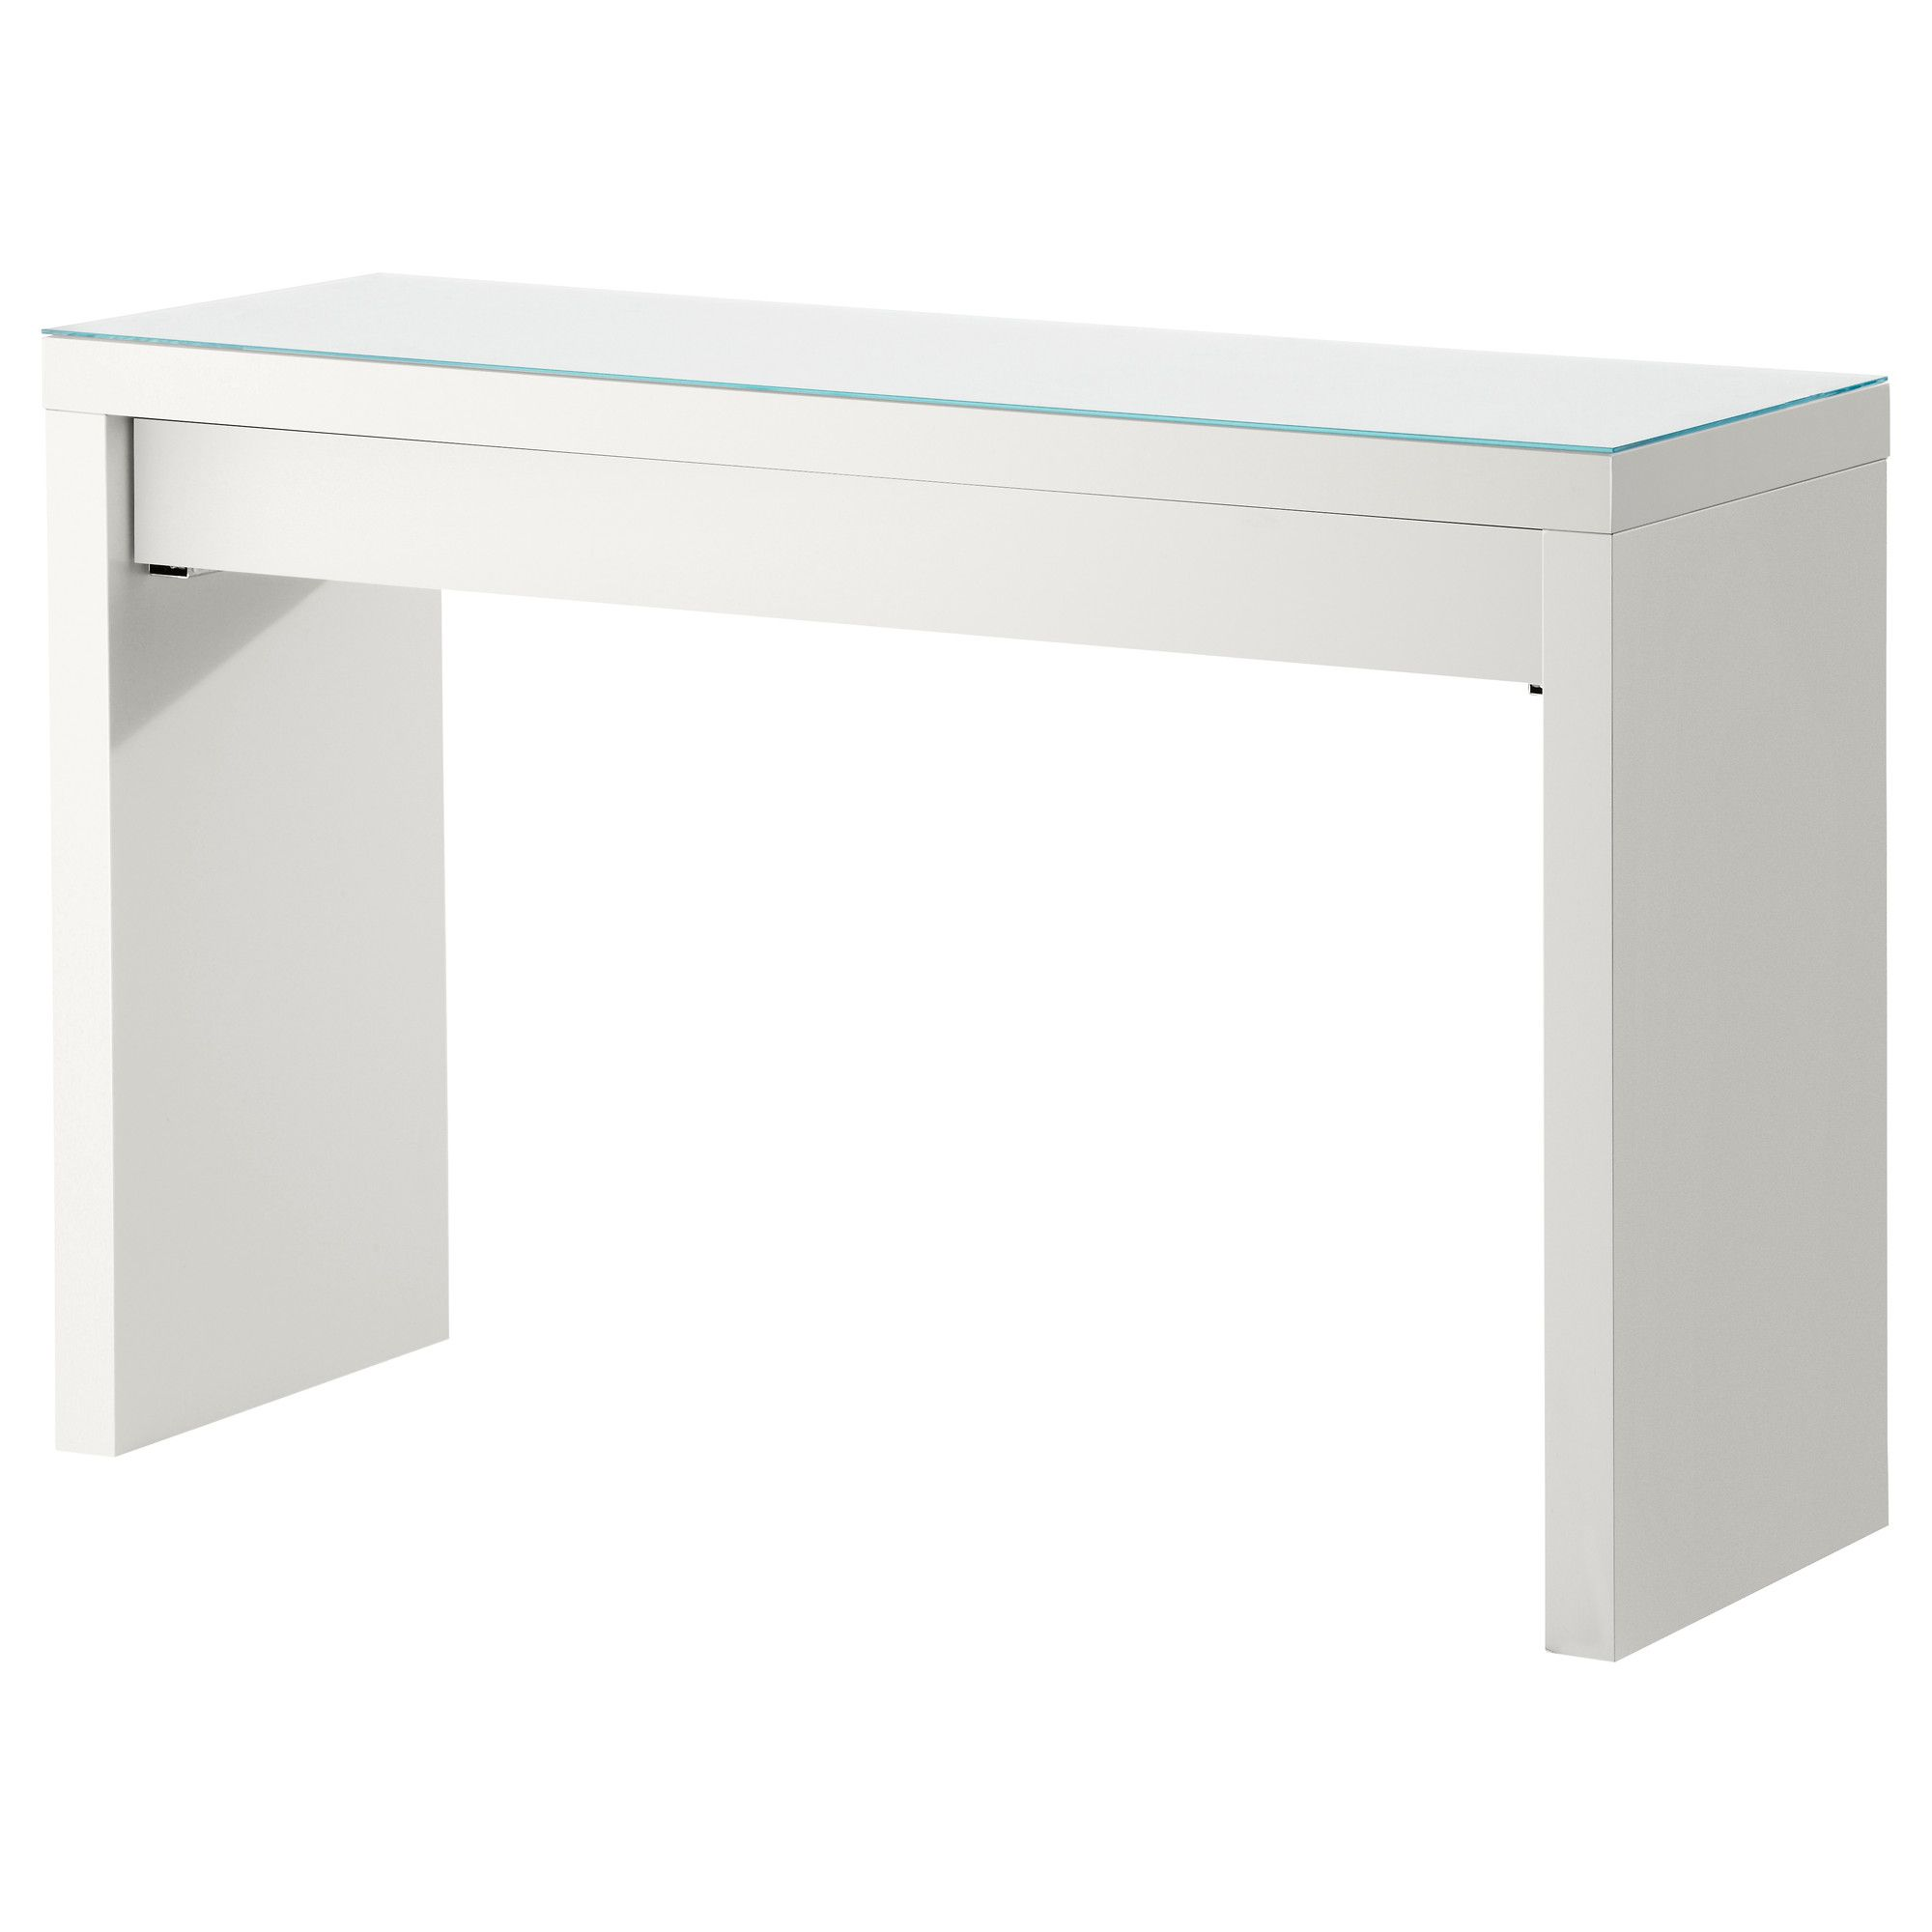 malm dressing table white malm dressing table malm and dressing tables. Black Bedroom Furniture Sets. Home Design Ideas